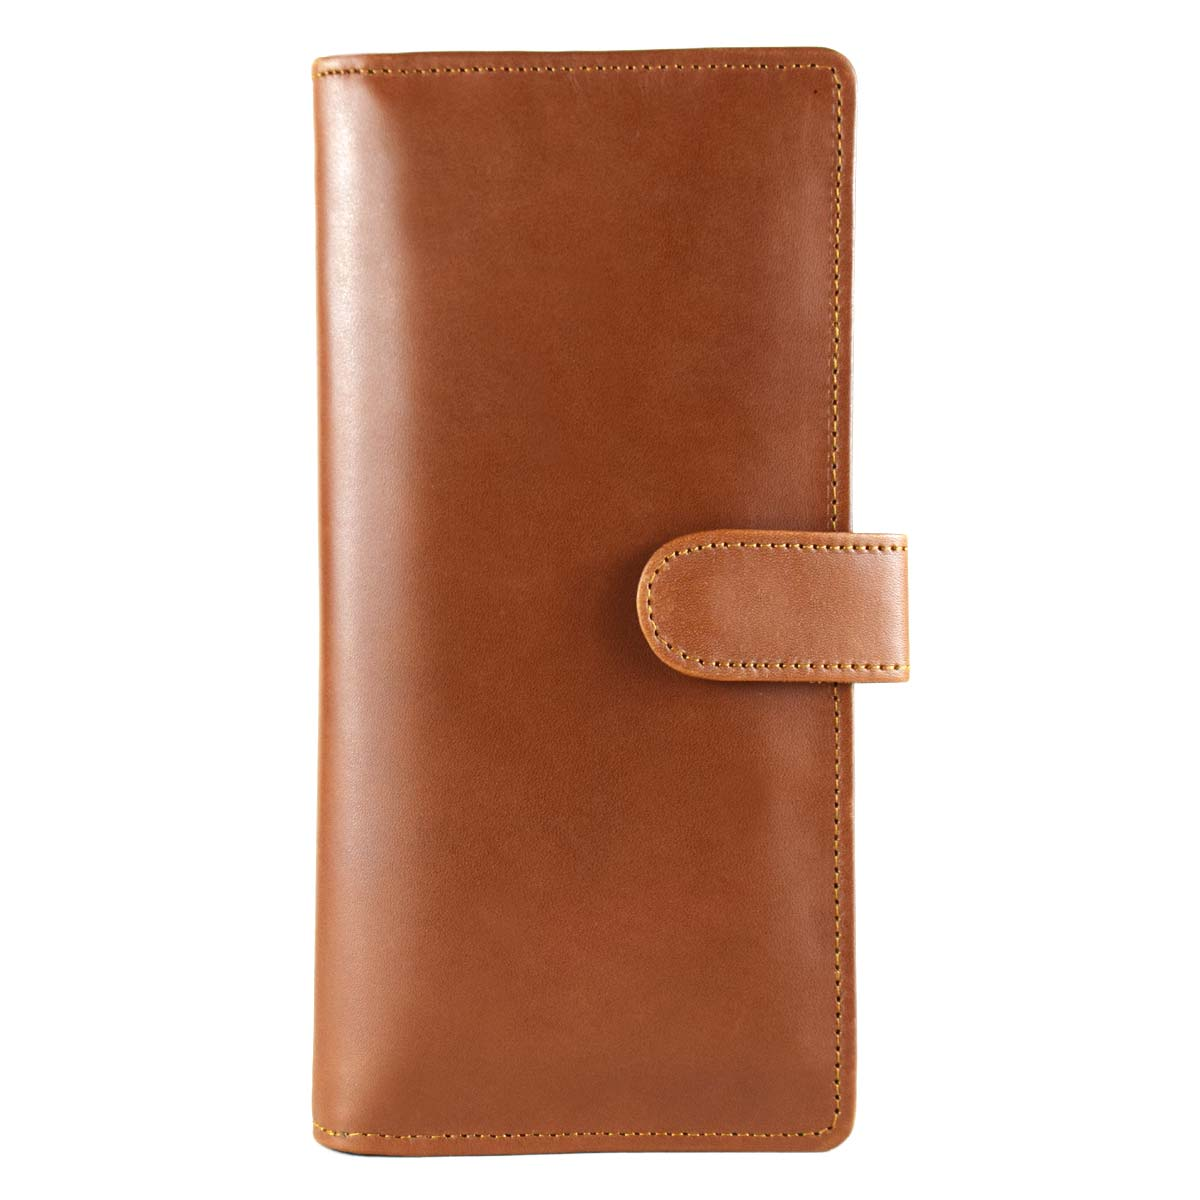 BROWN LONG WALLET WITH STRAP